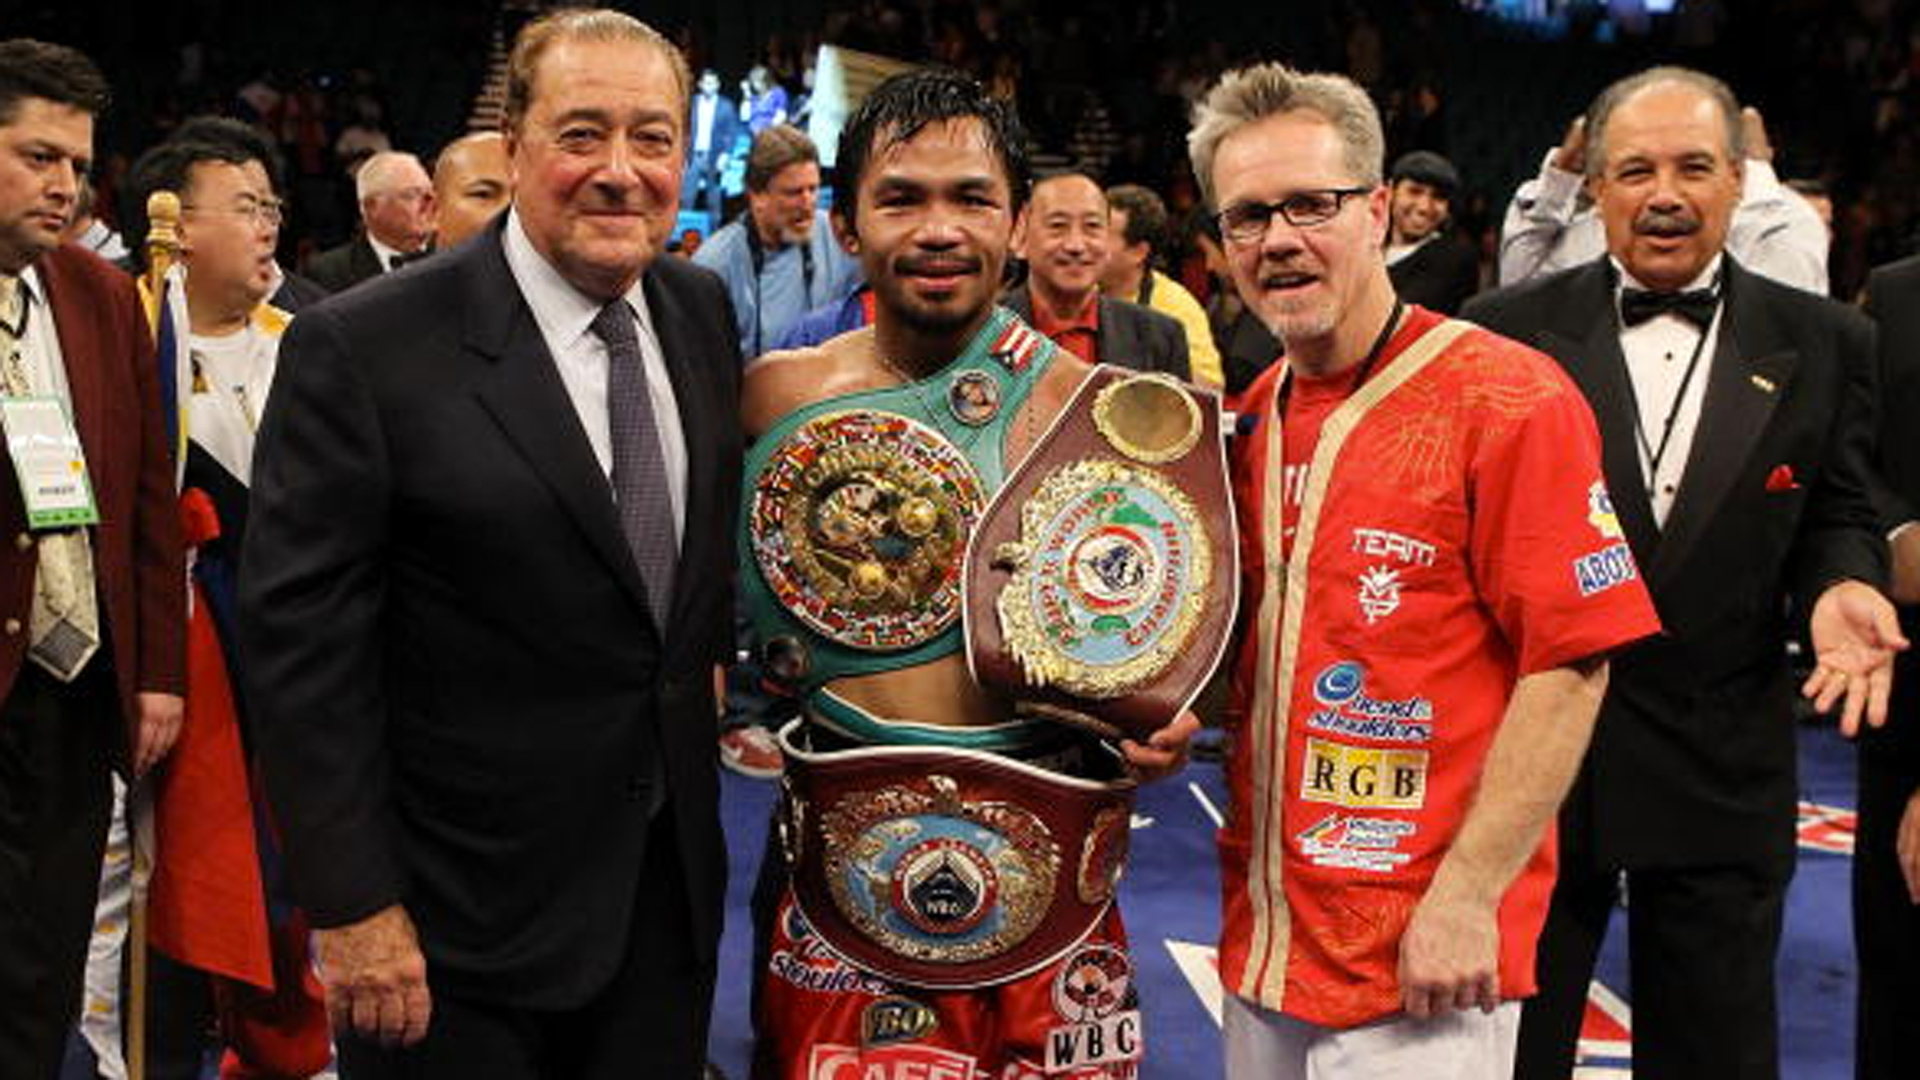 http://images.performgroup.com/di/library/sporting_news/c3/20/pacquiao-belts-042615-getty-ftr_1bt2x5xo6dtnj1gm70d8sw40lk.jpg?t=-145010380